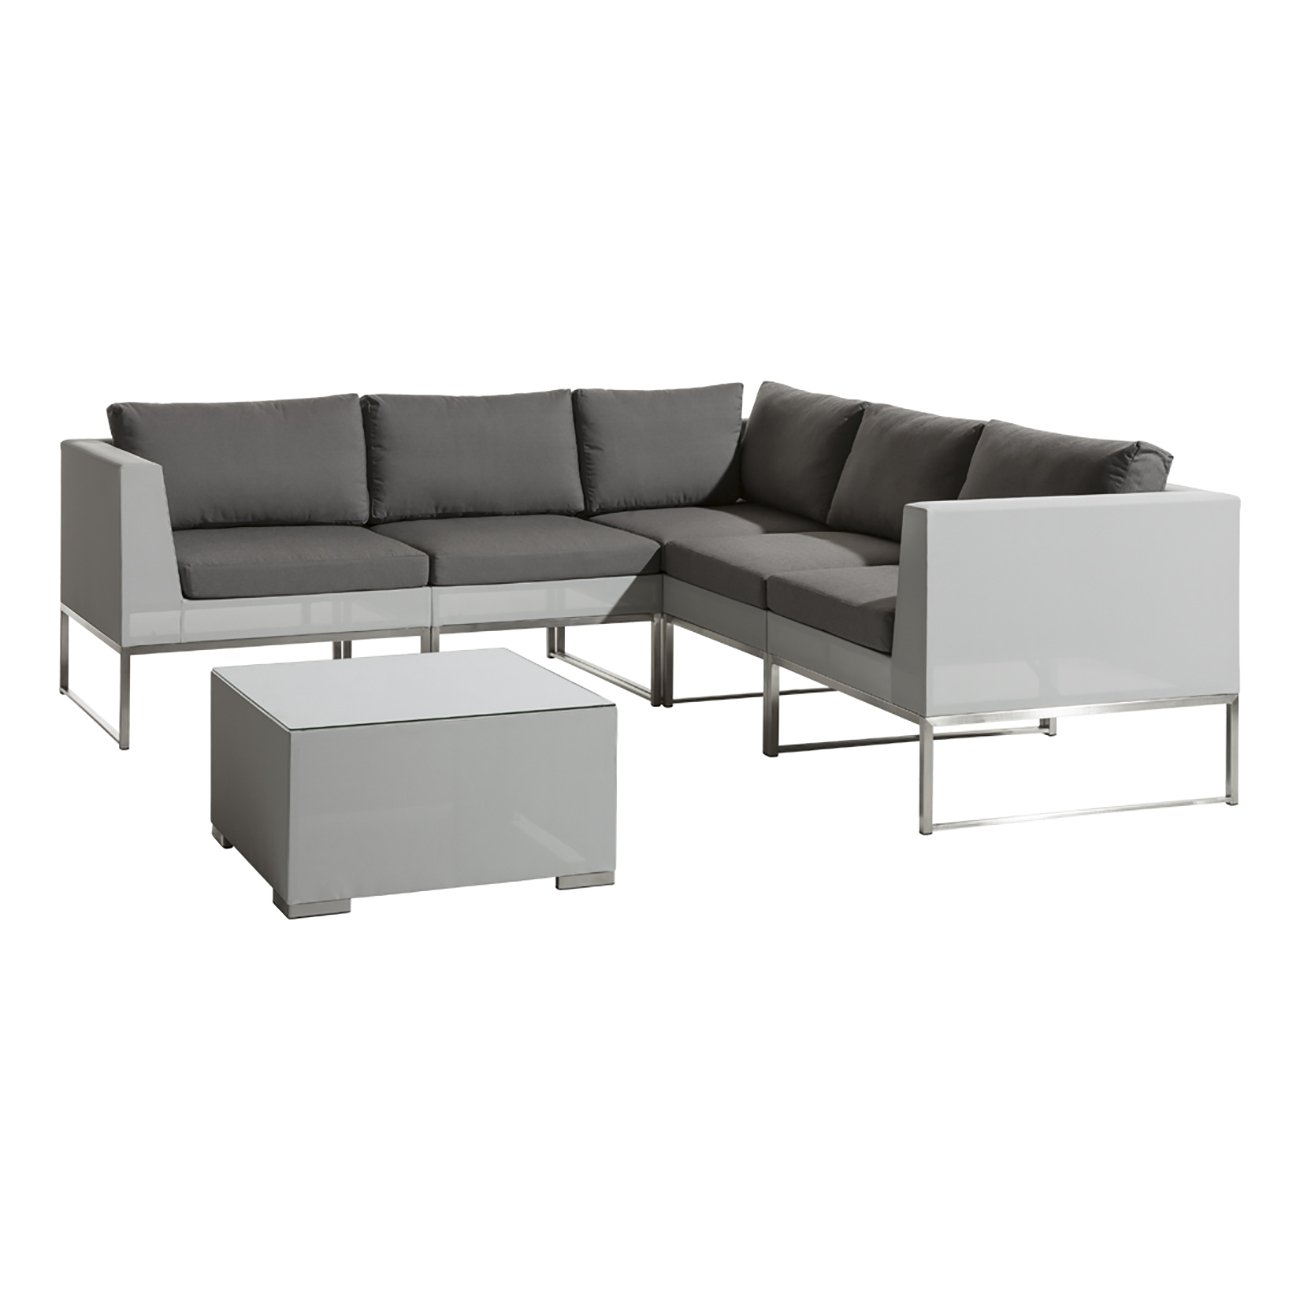 Loungemöbel Outdoor gartenmöbel lounge set outliv tongo gartenlounge 6 tlg edelstahl